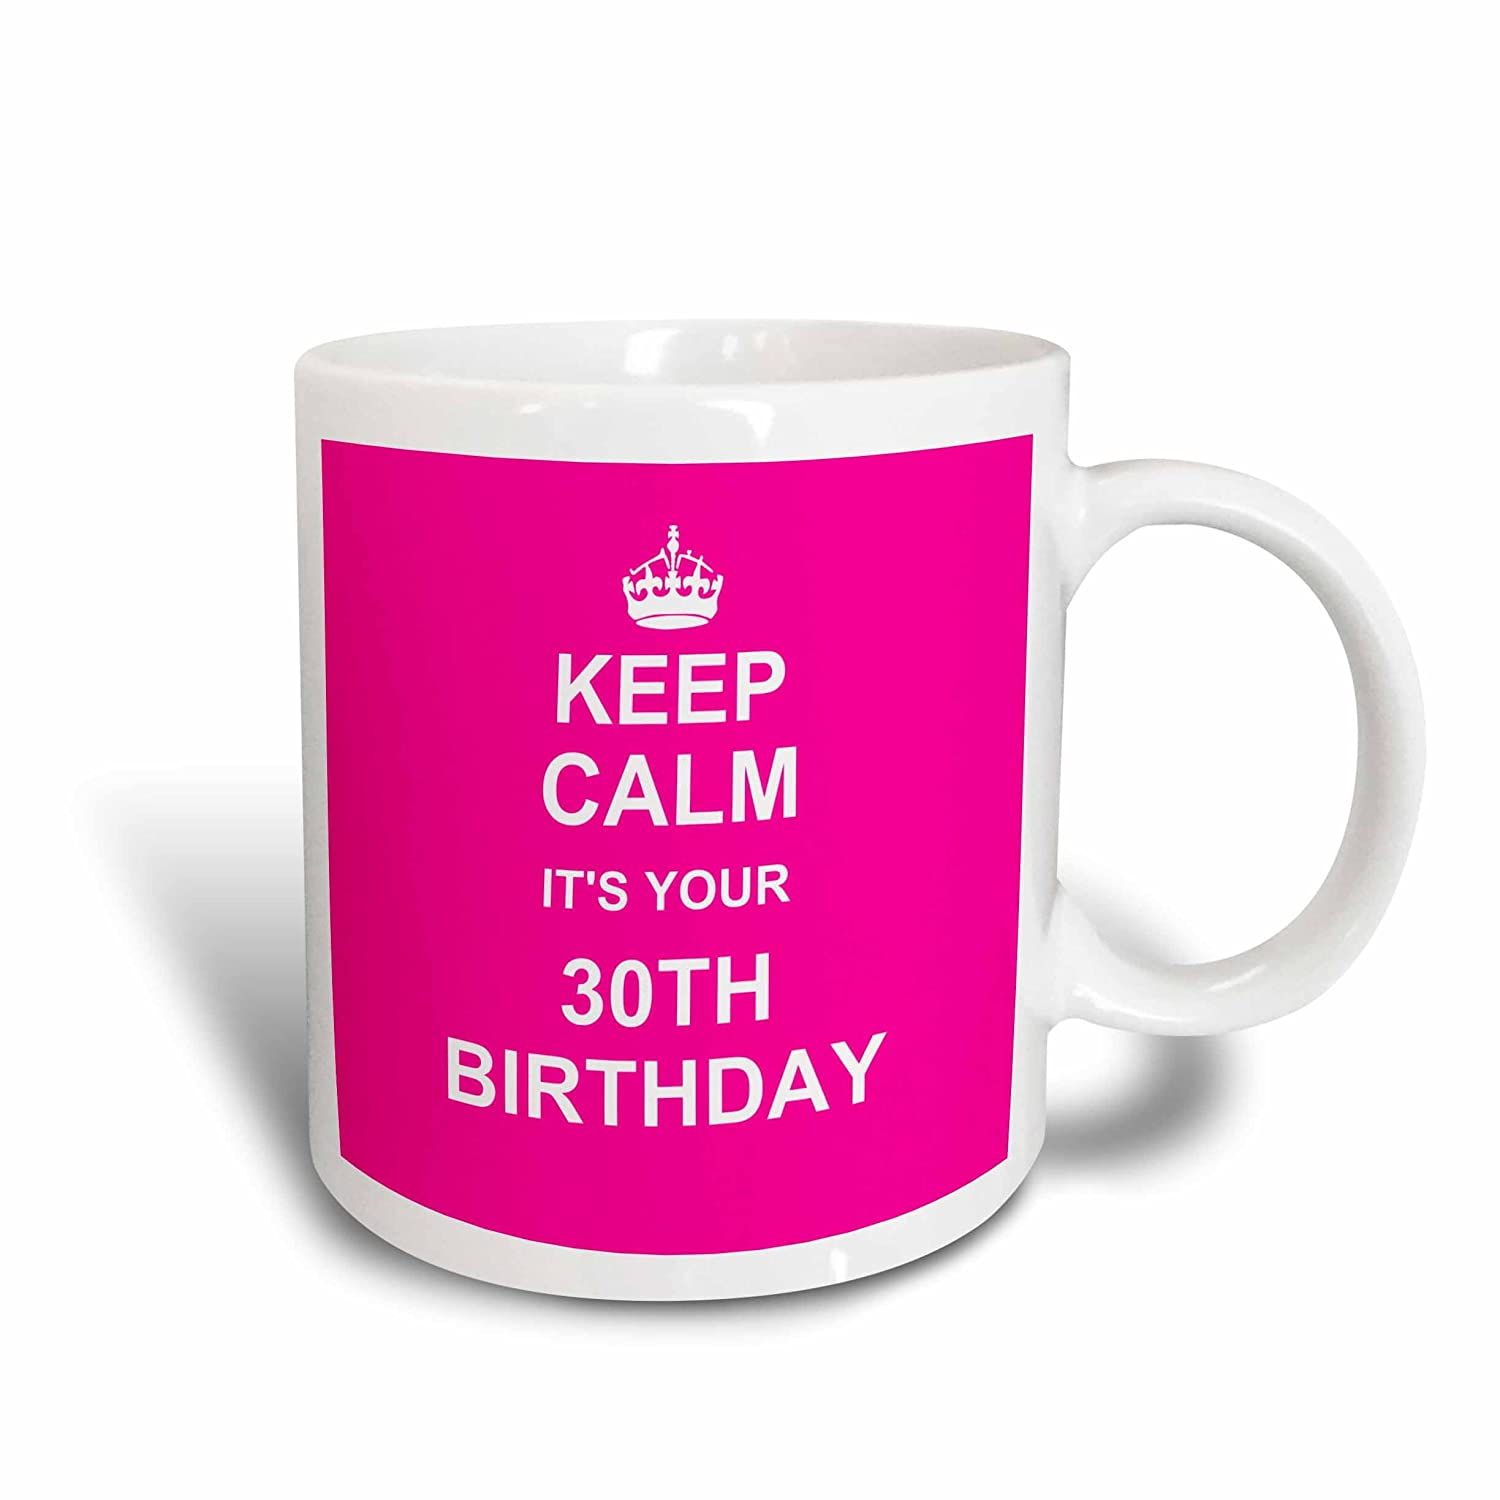 27b8b06d 11-oz Two-Tone Red Mug : 3dRose InspirationzStore Typography - Keep Calm  its your 30th Birthday hot pink girly girls fun stay calm and carry on  about ...